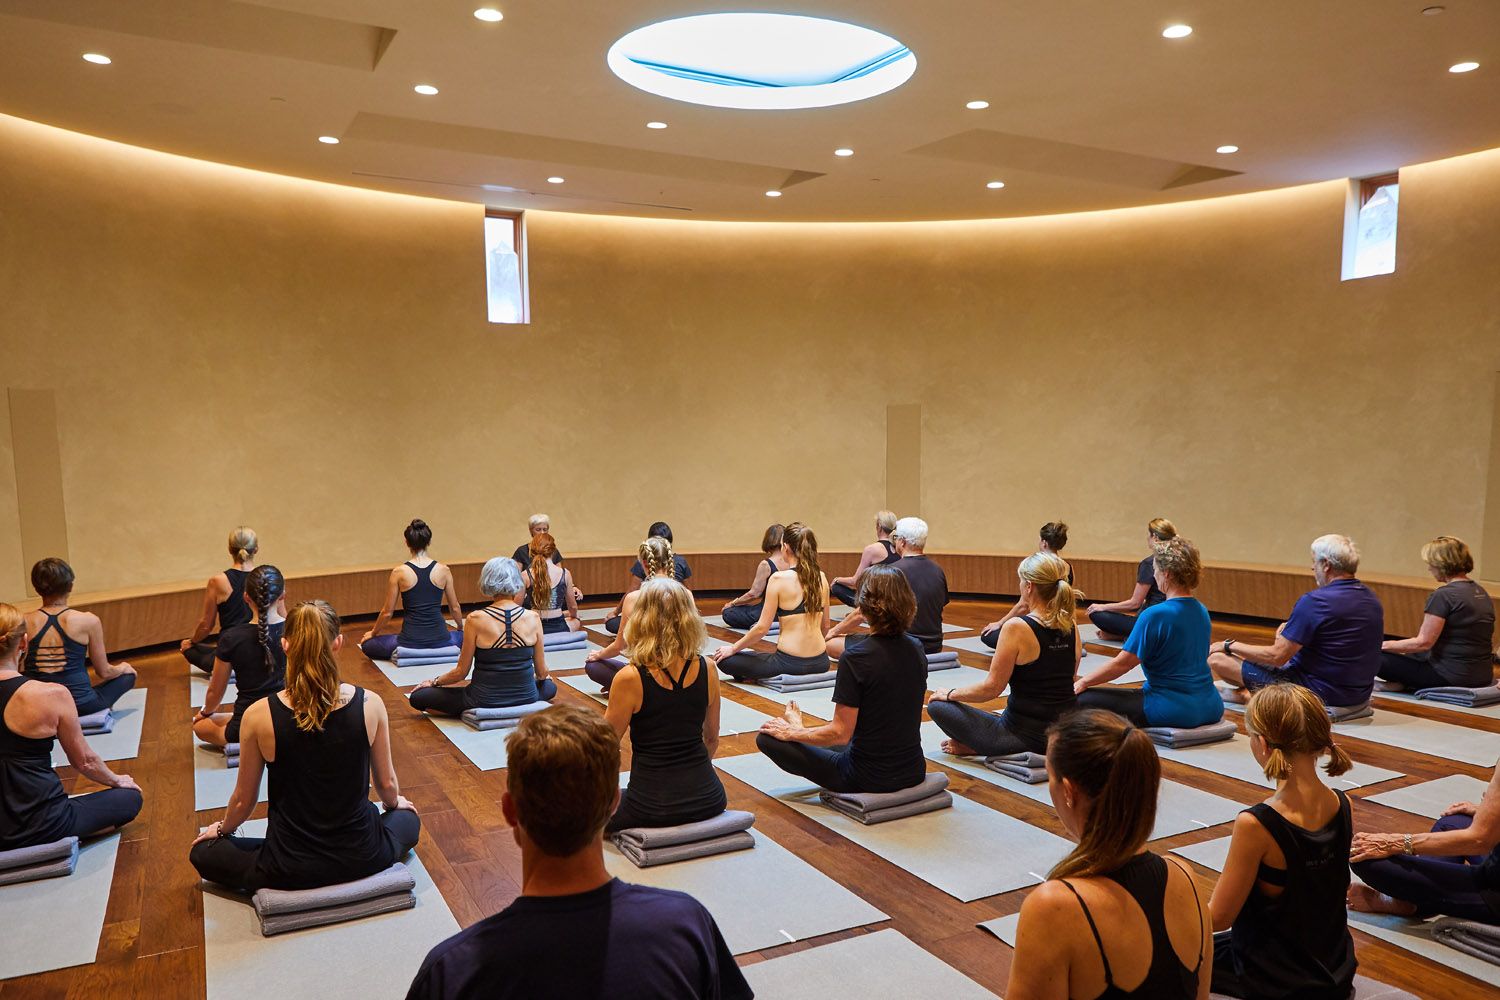 GROUPS - The breathtaking True Nature Healing Arts campus and its facilities are available for private events, rights of passage, ceremonies, and transformational large group retreats.LEARN MORE